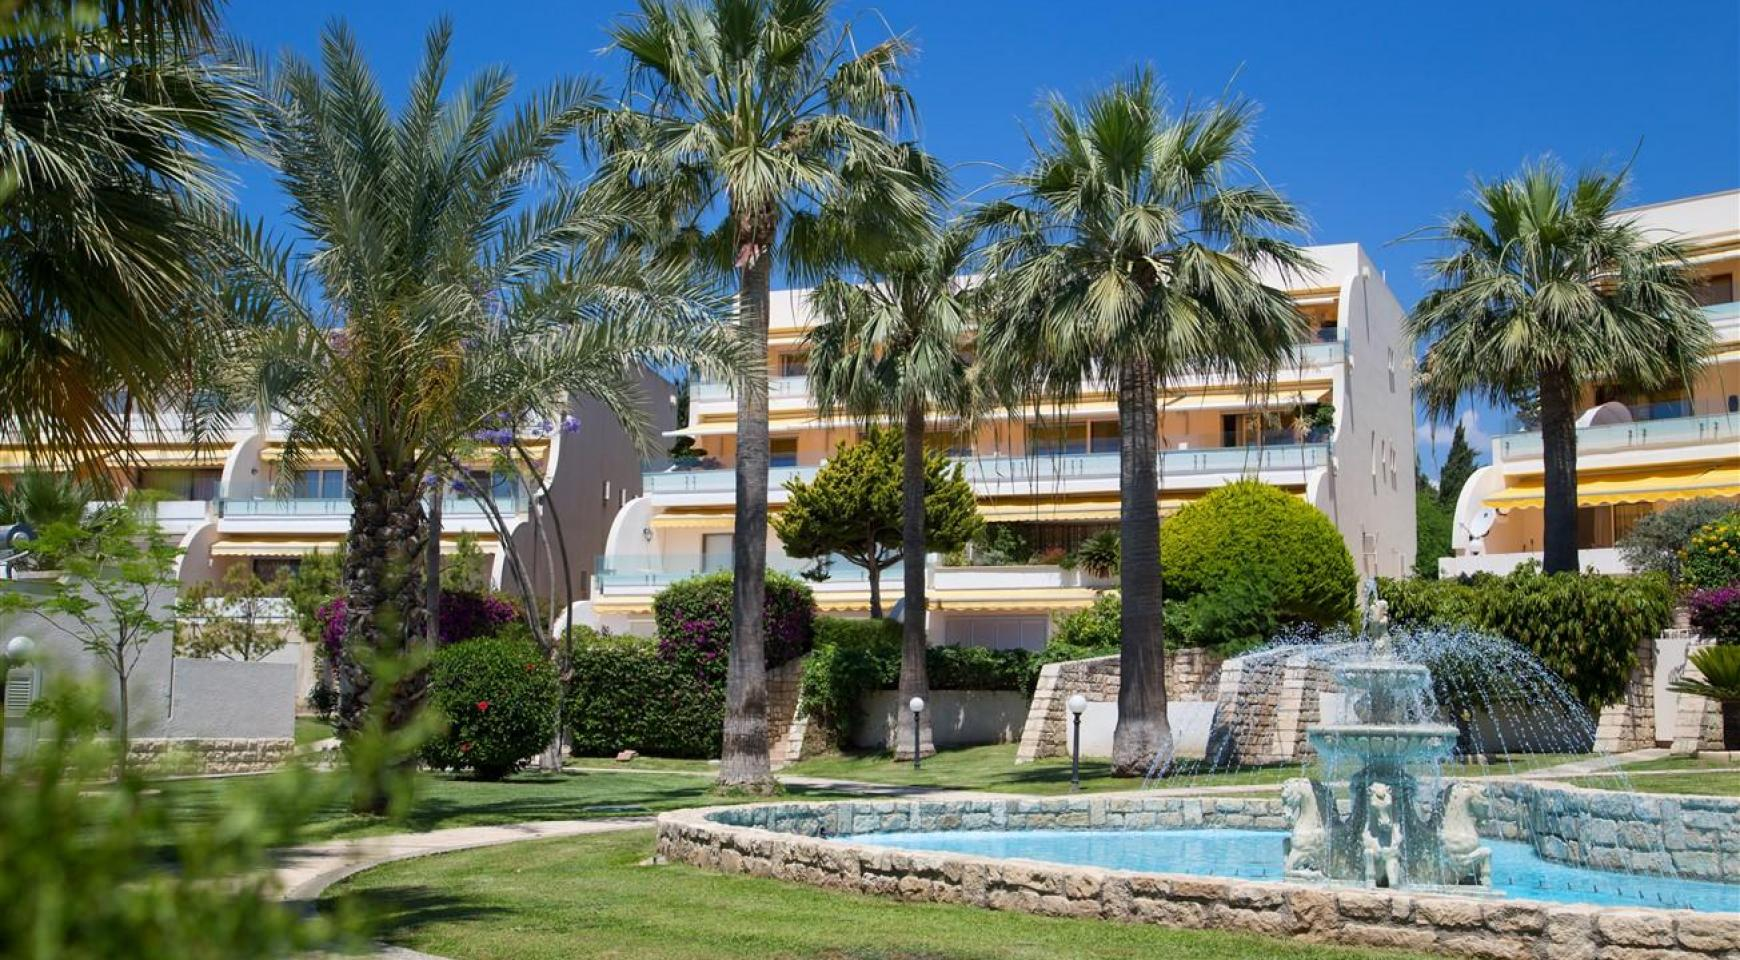 3 Bedroom Apartment in a Gated Complex by the Sea - 4